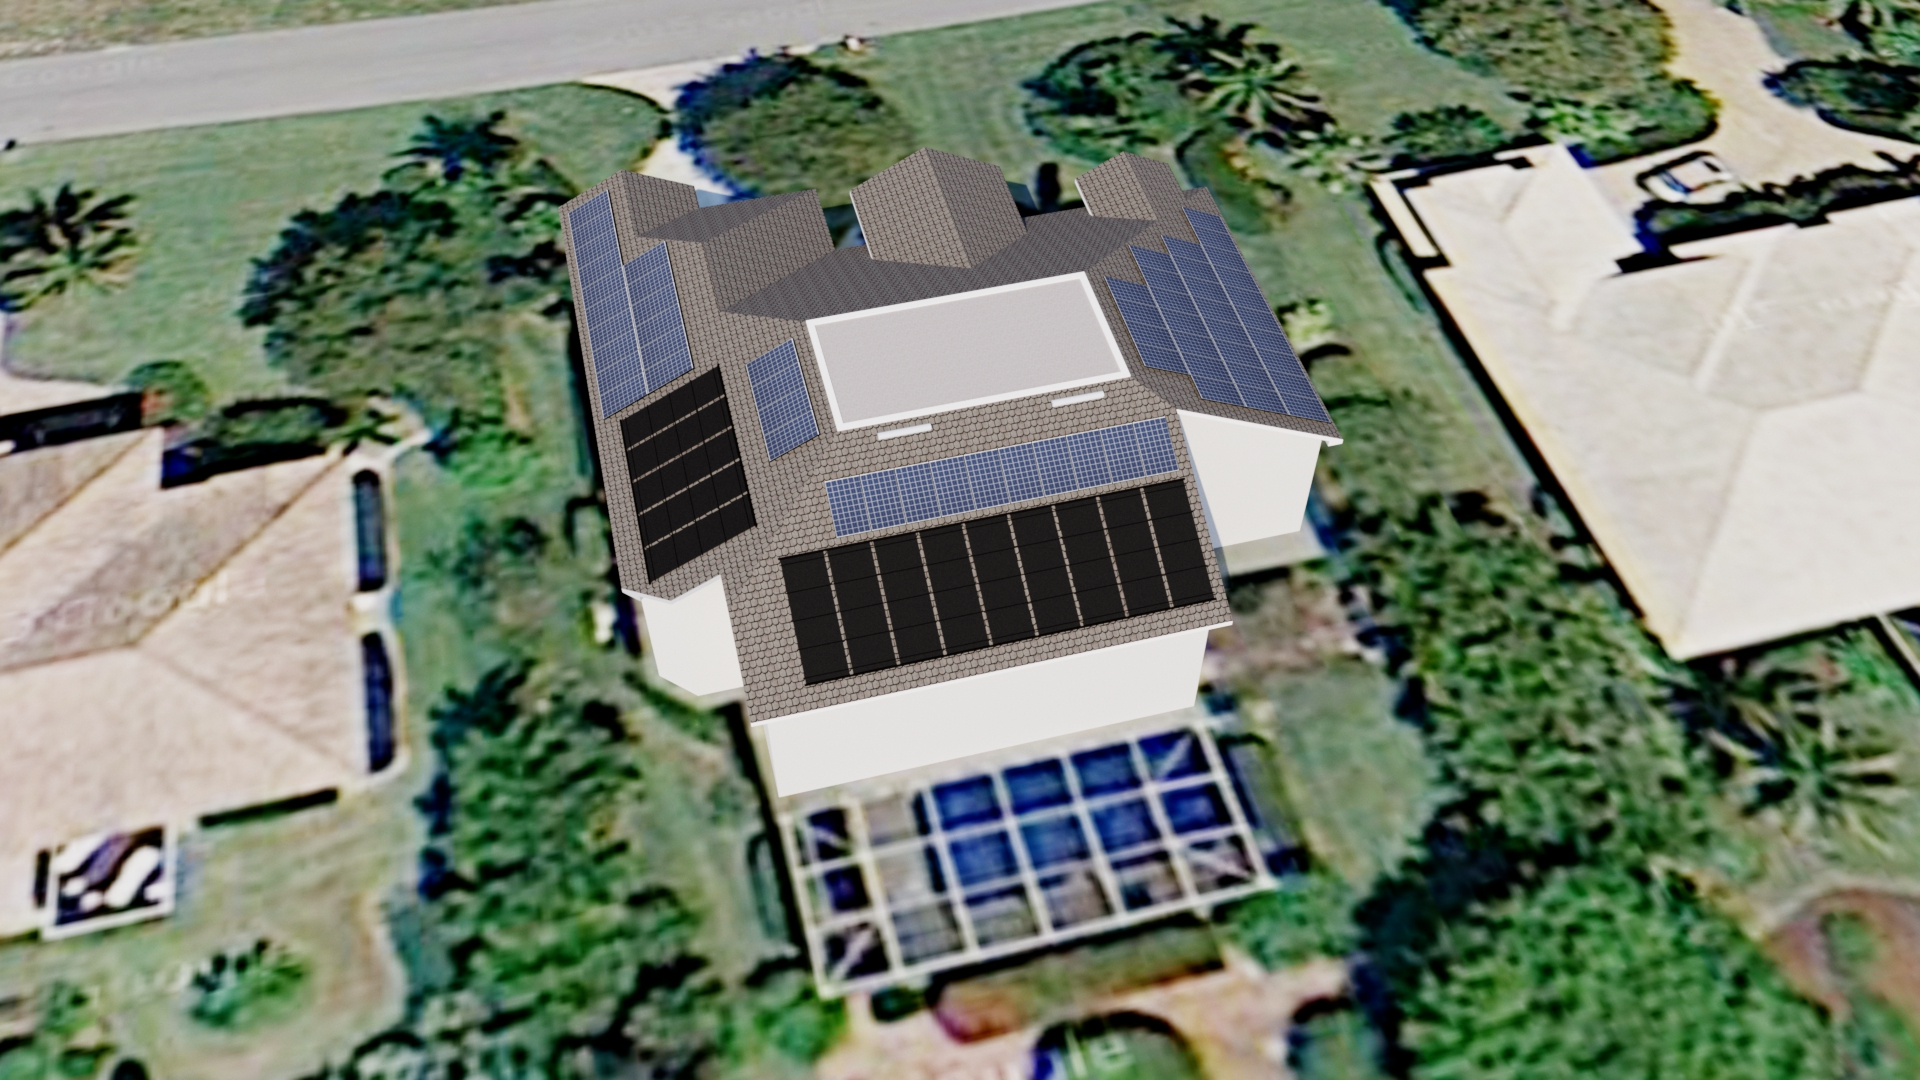 SanCap Solar Connect Photovoltaic Solar Panel System Design (31)